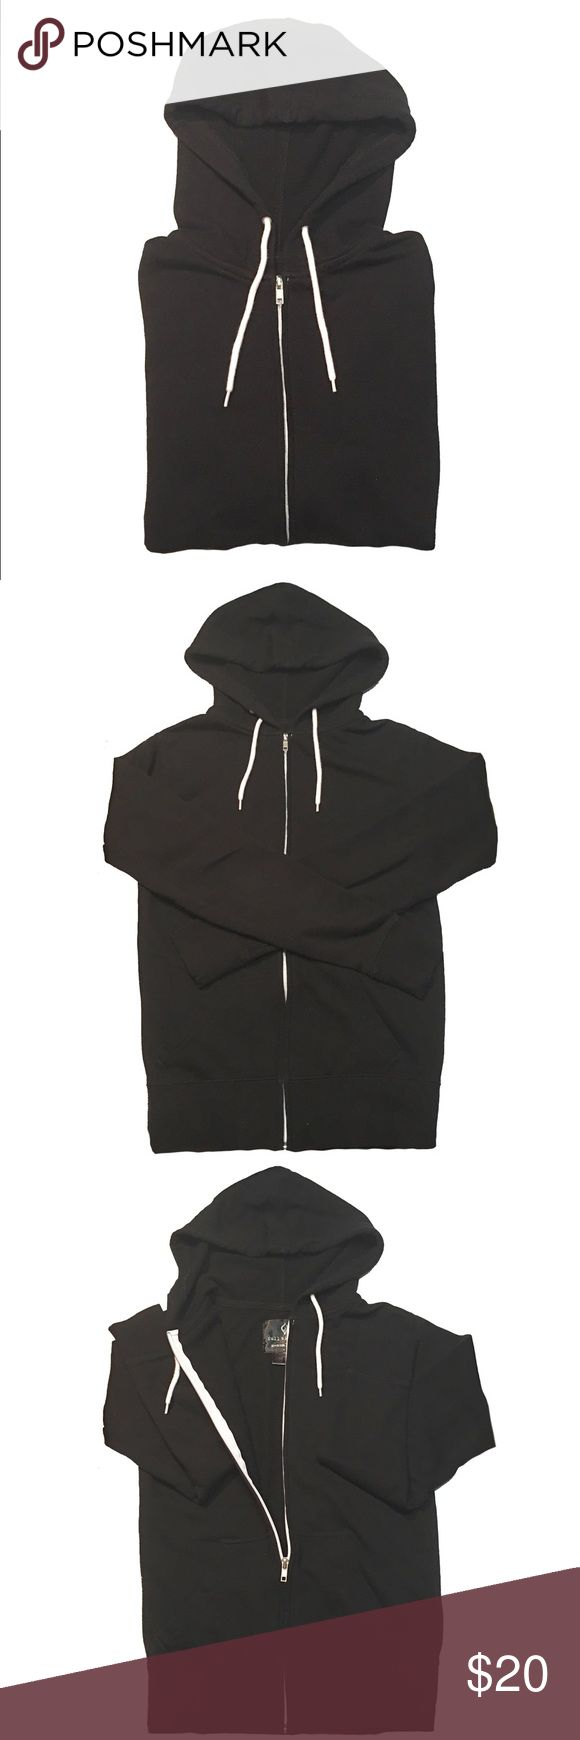 Basic Black Zip Up Hoodie · Full Tilt black zip up hoodie bought from Tilly's. Basic and nothing flashy. White contrasting zipper and drawstring. Thin. Pockets. Barely worn. Excellent used condition.   · These are photos of the actual item. Please review photos for flaws or signs of wear. I try my best to showcase and represent the true product. Tilly's Tops Sweatshirts & Hoodies